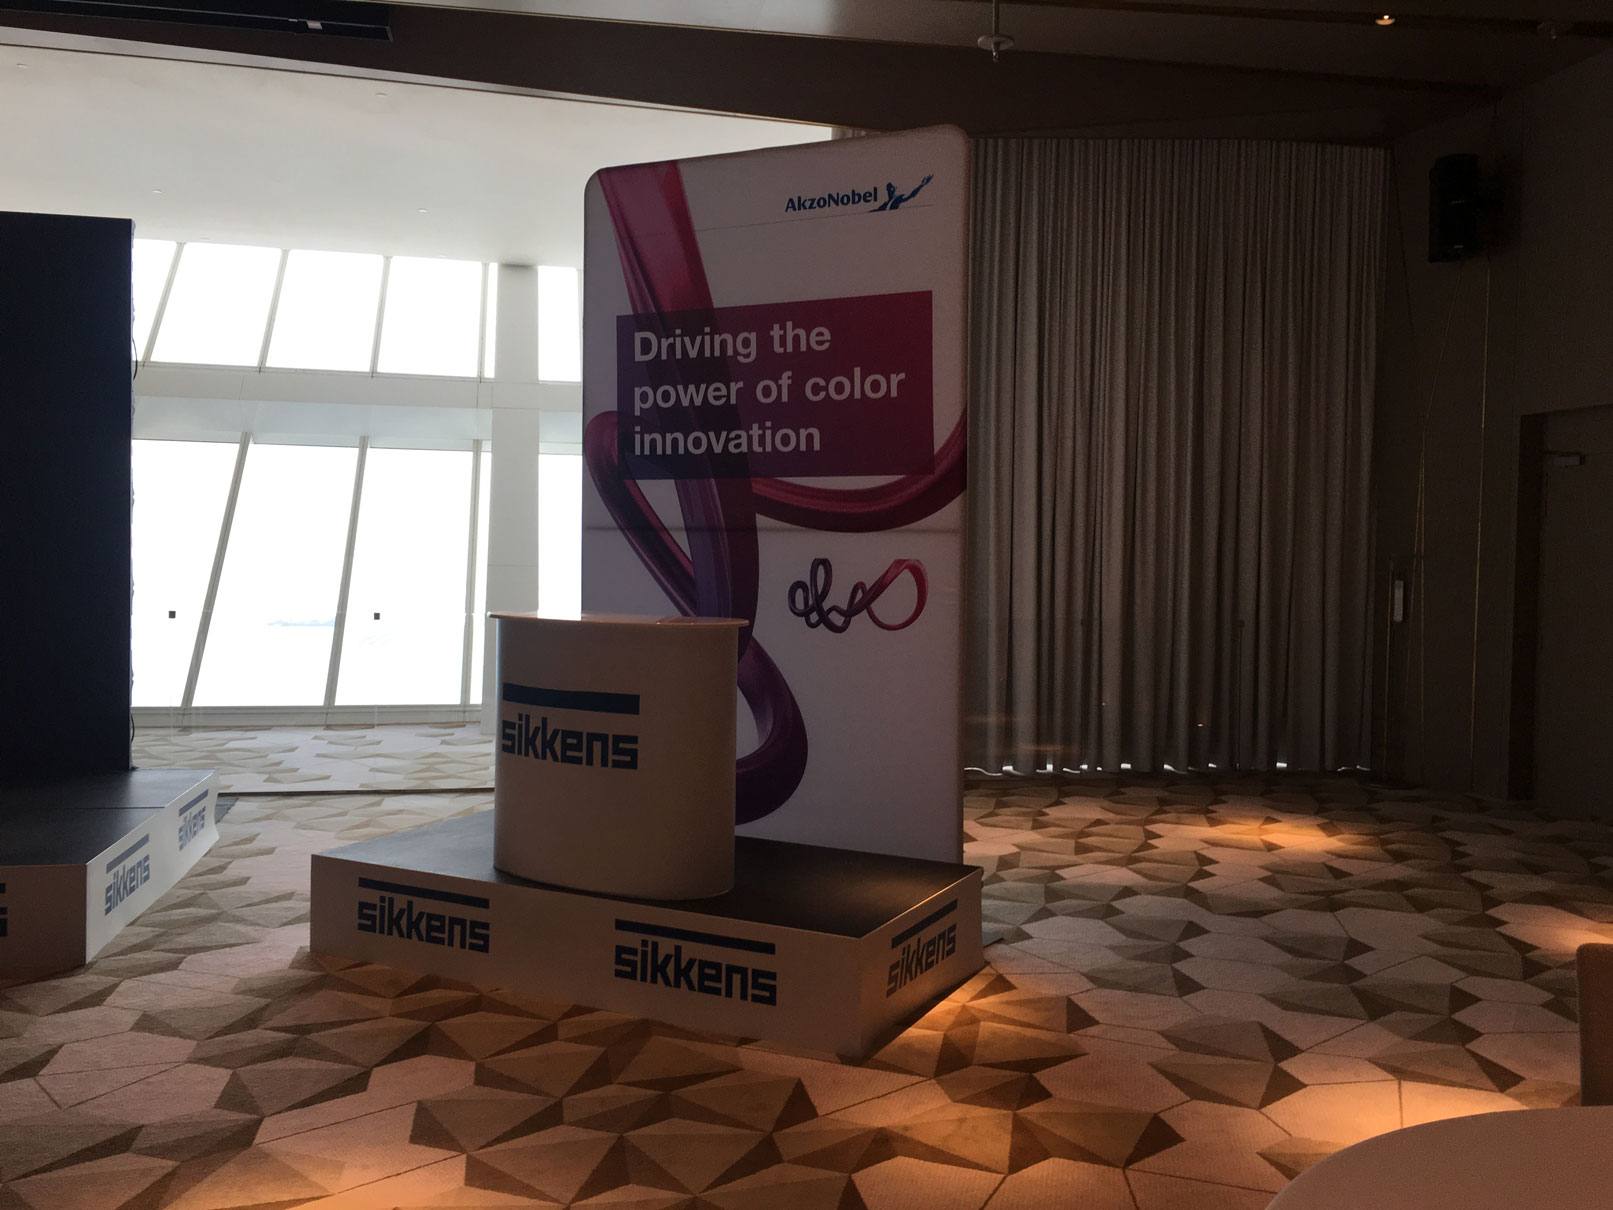 Sikkens AkzoNobel Event Branding 3 by Cornerstone